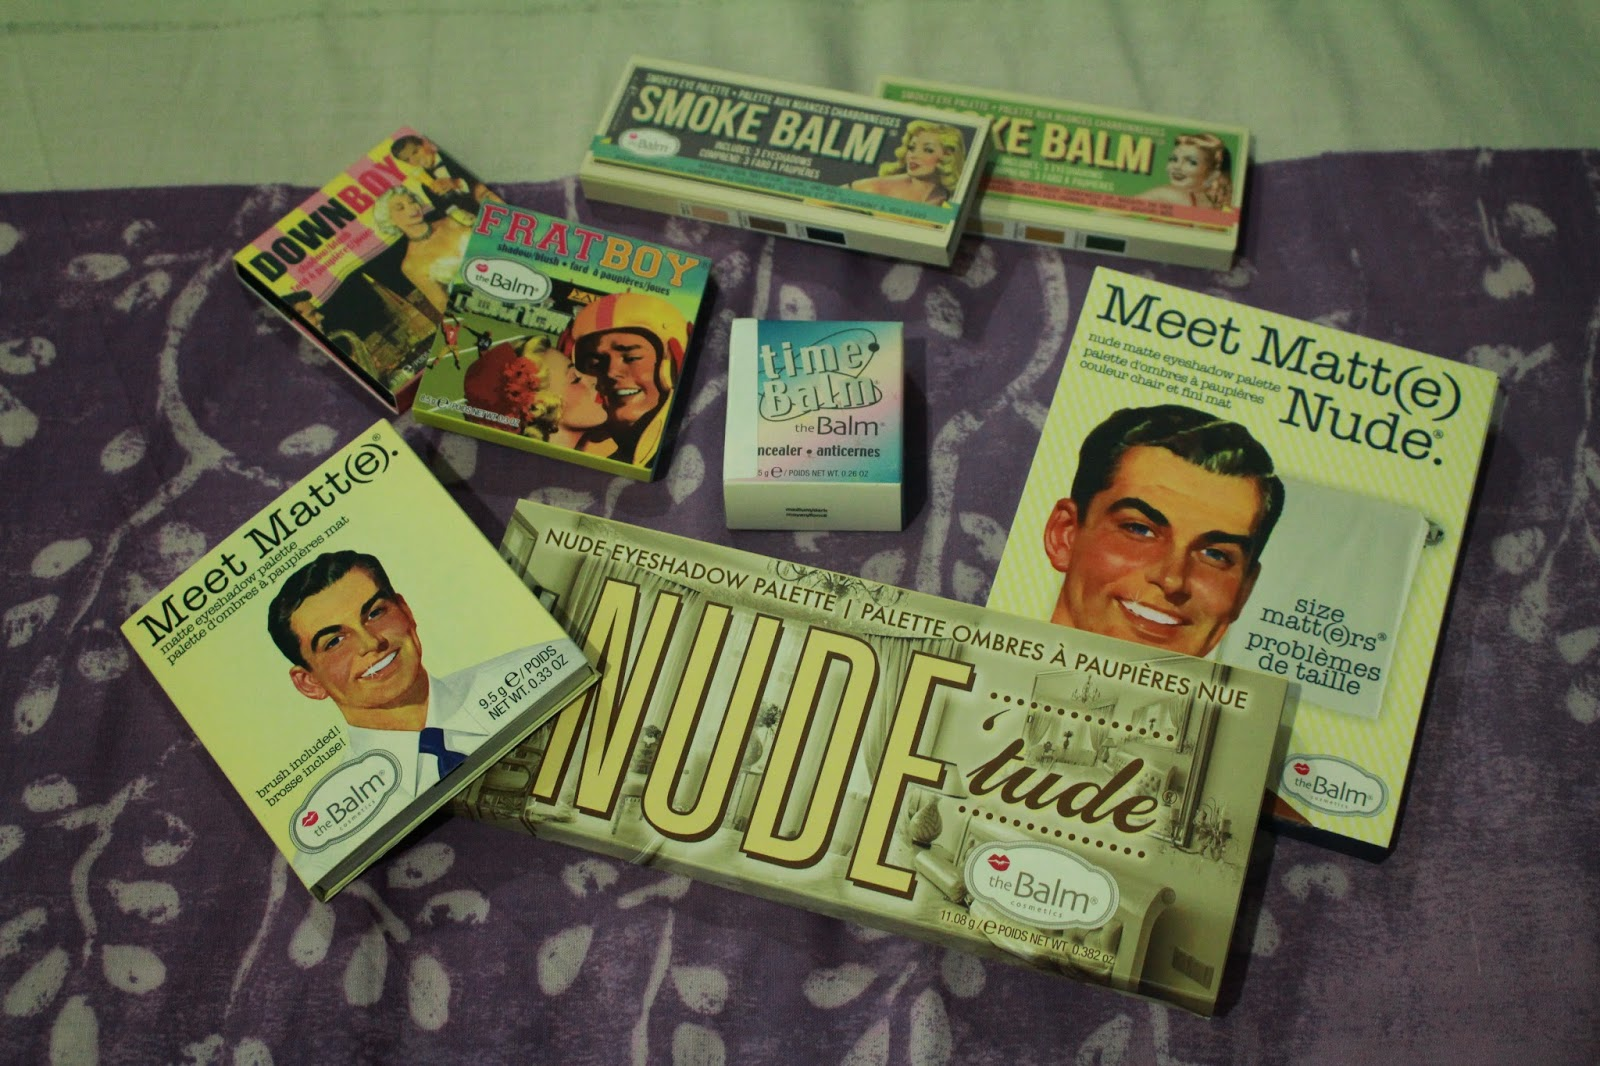 Giant The Balm Haul